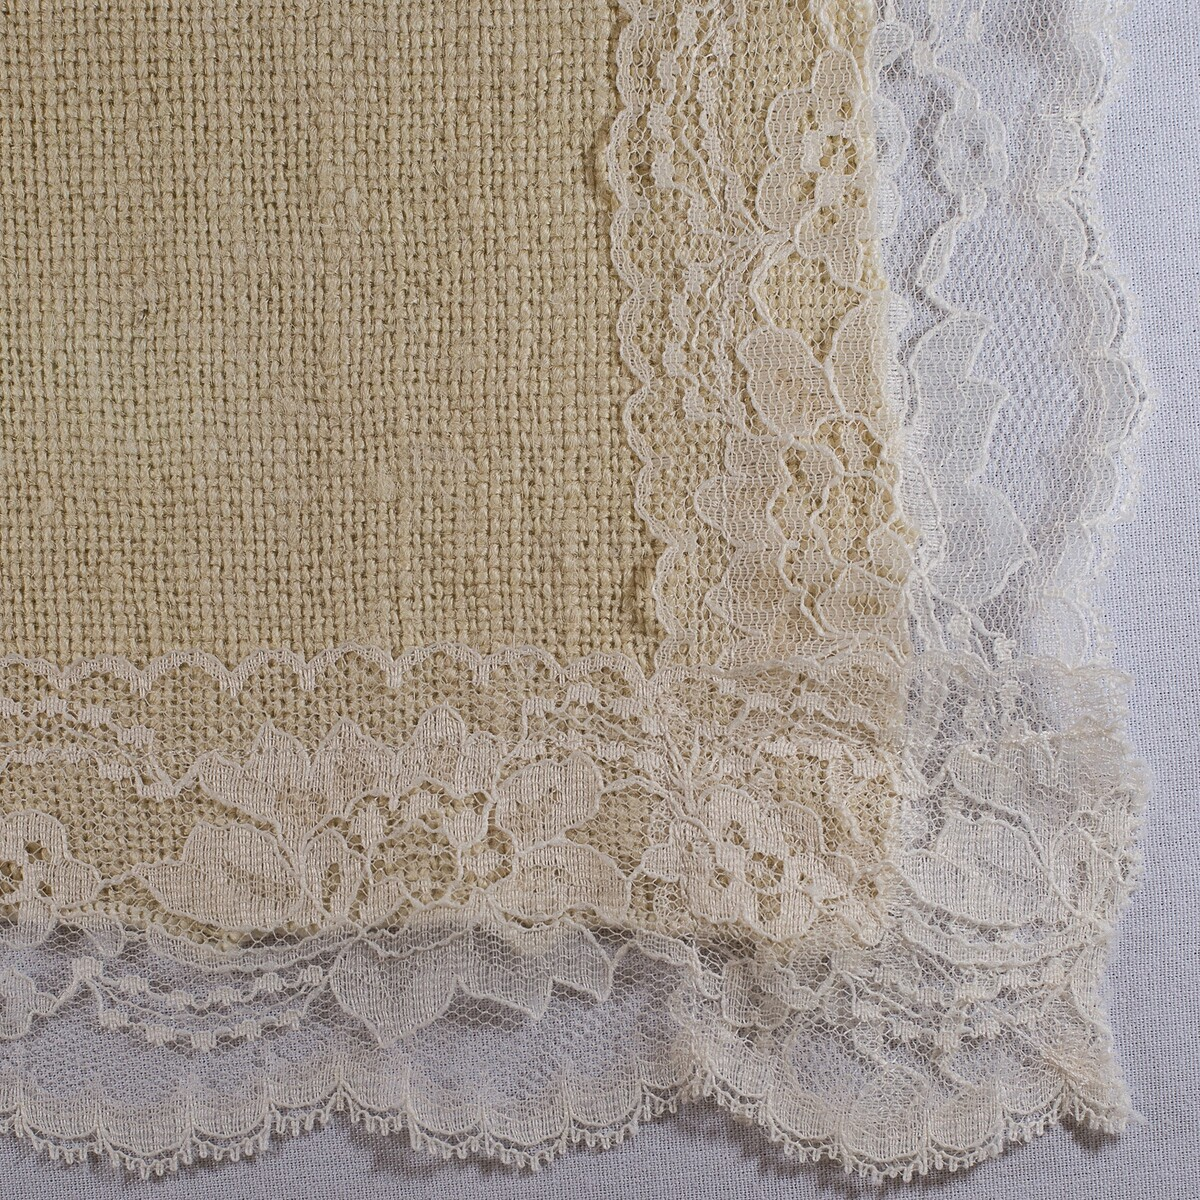 Ivory Burlap with Lace